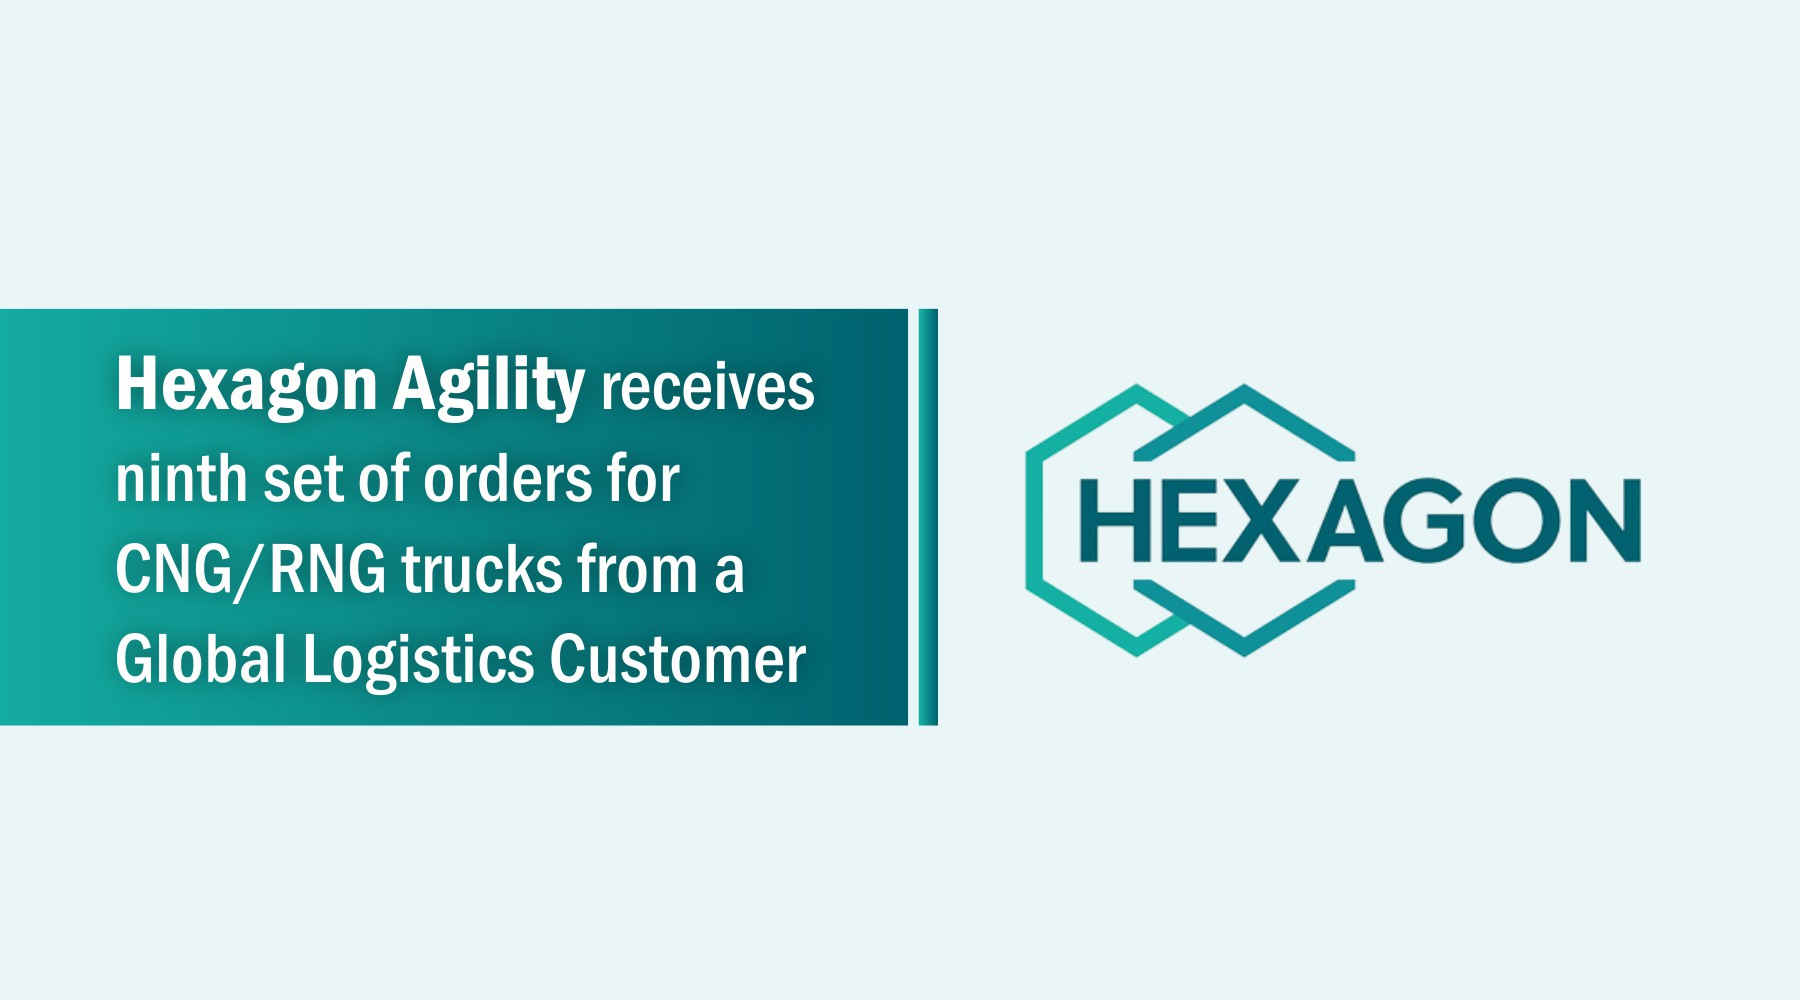 Hexagon Agility receives ninth set of orders for CNGRNG trucks from a global logistics customer